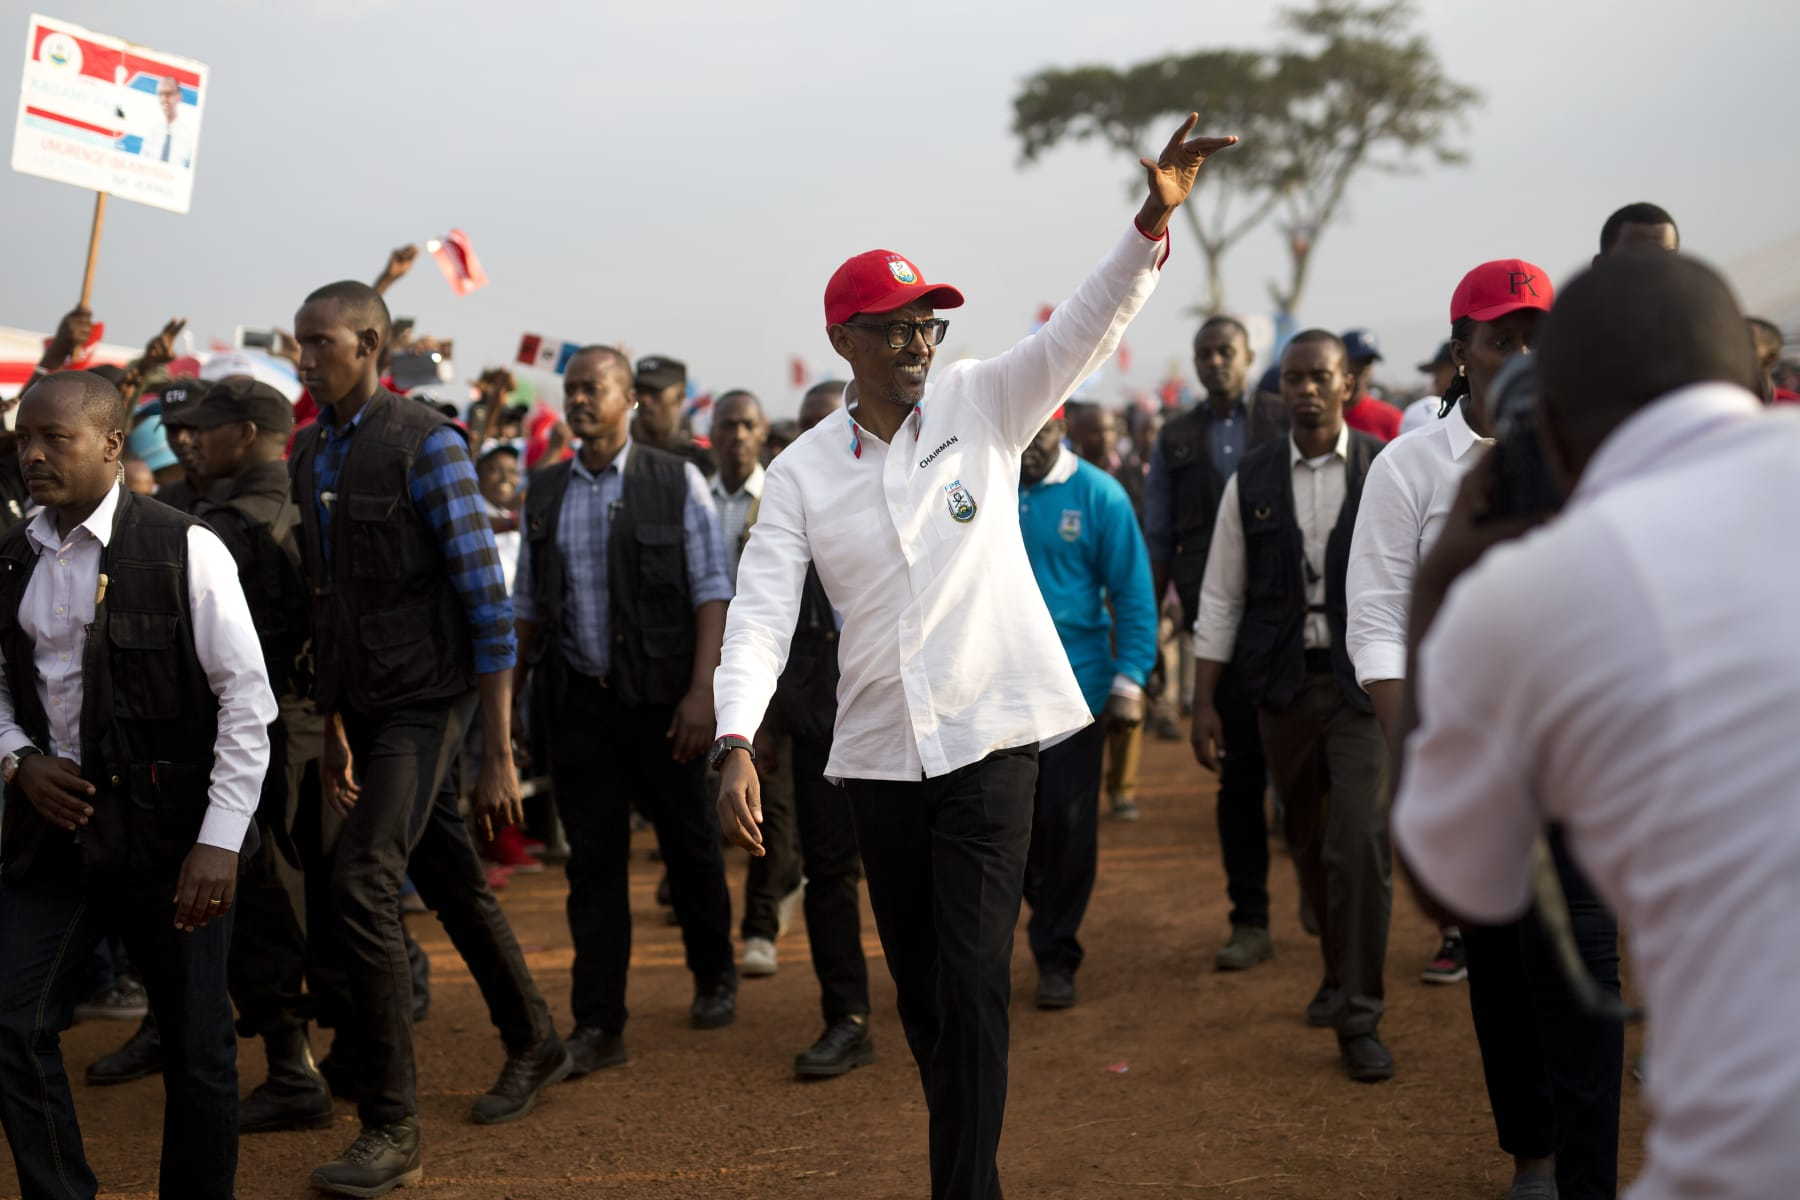 Rwanda's President Paul Kagame wave as he leaves an election campaign rally on the hills overlooking Kigali, Rwanda, Wednesday Aug. 2, 2017. Kagame has been in power since the end of the country's genocide in 1994 and is widely expected to win another term in the Aug. 4 elections after the government earlier this month disqualified all but three candidates. (AP Photo/Jerome Delay) (AP)